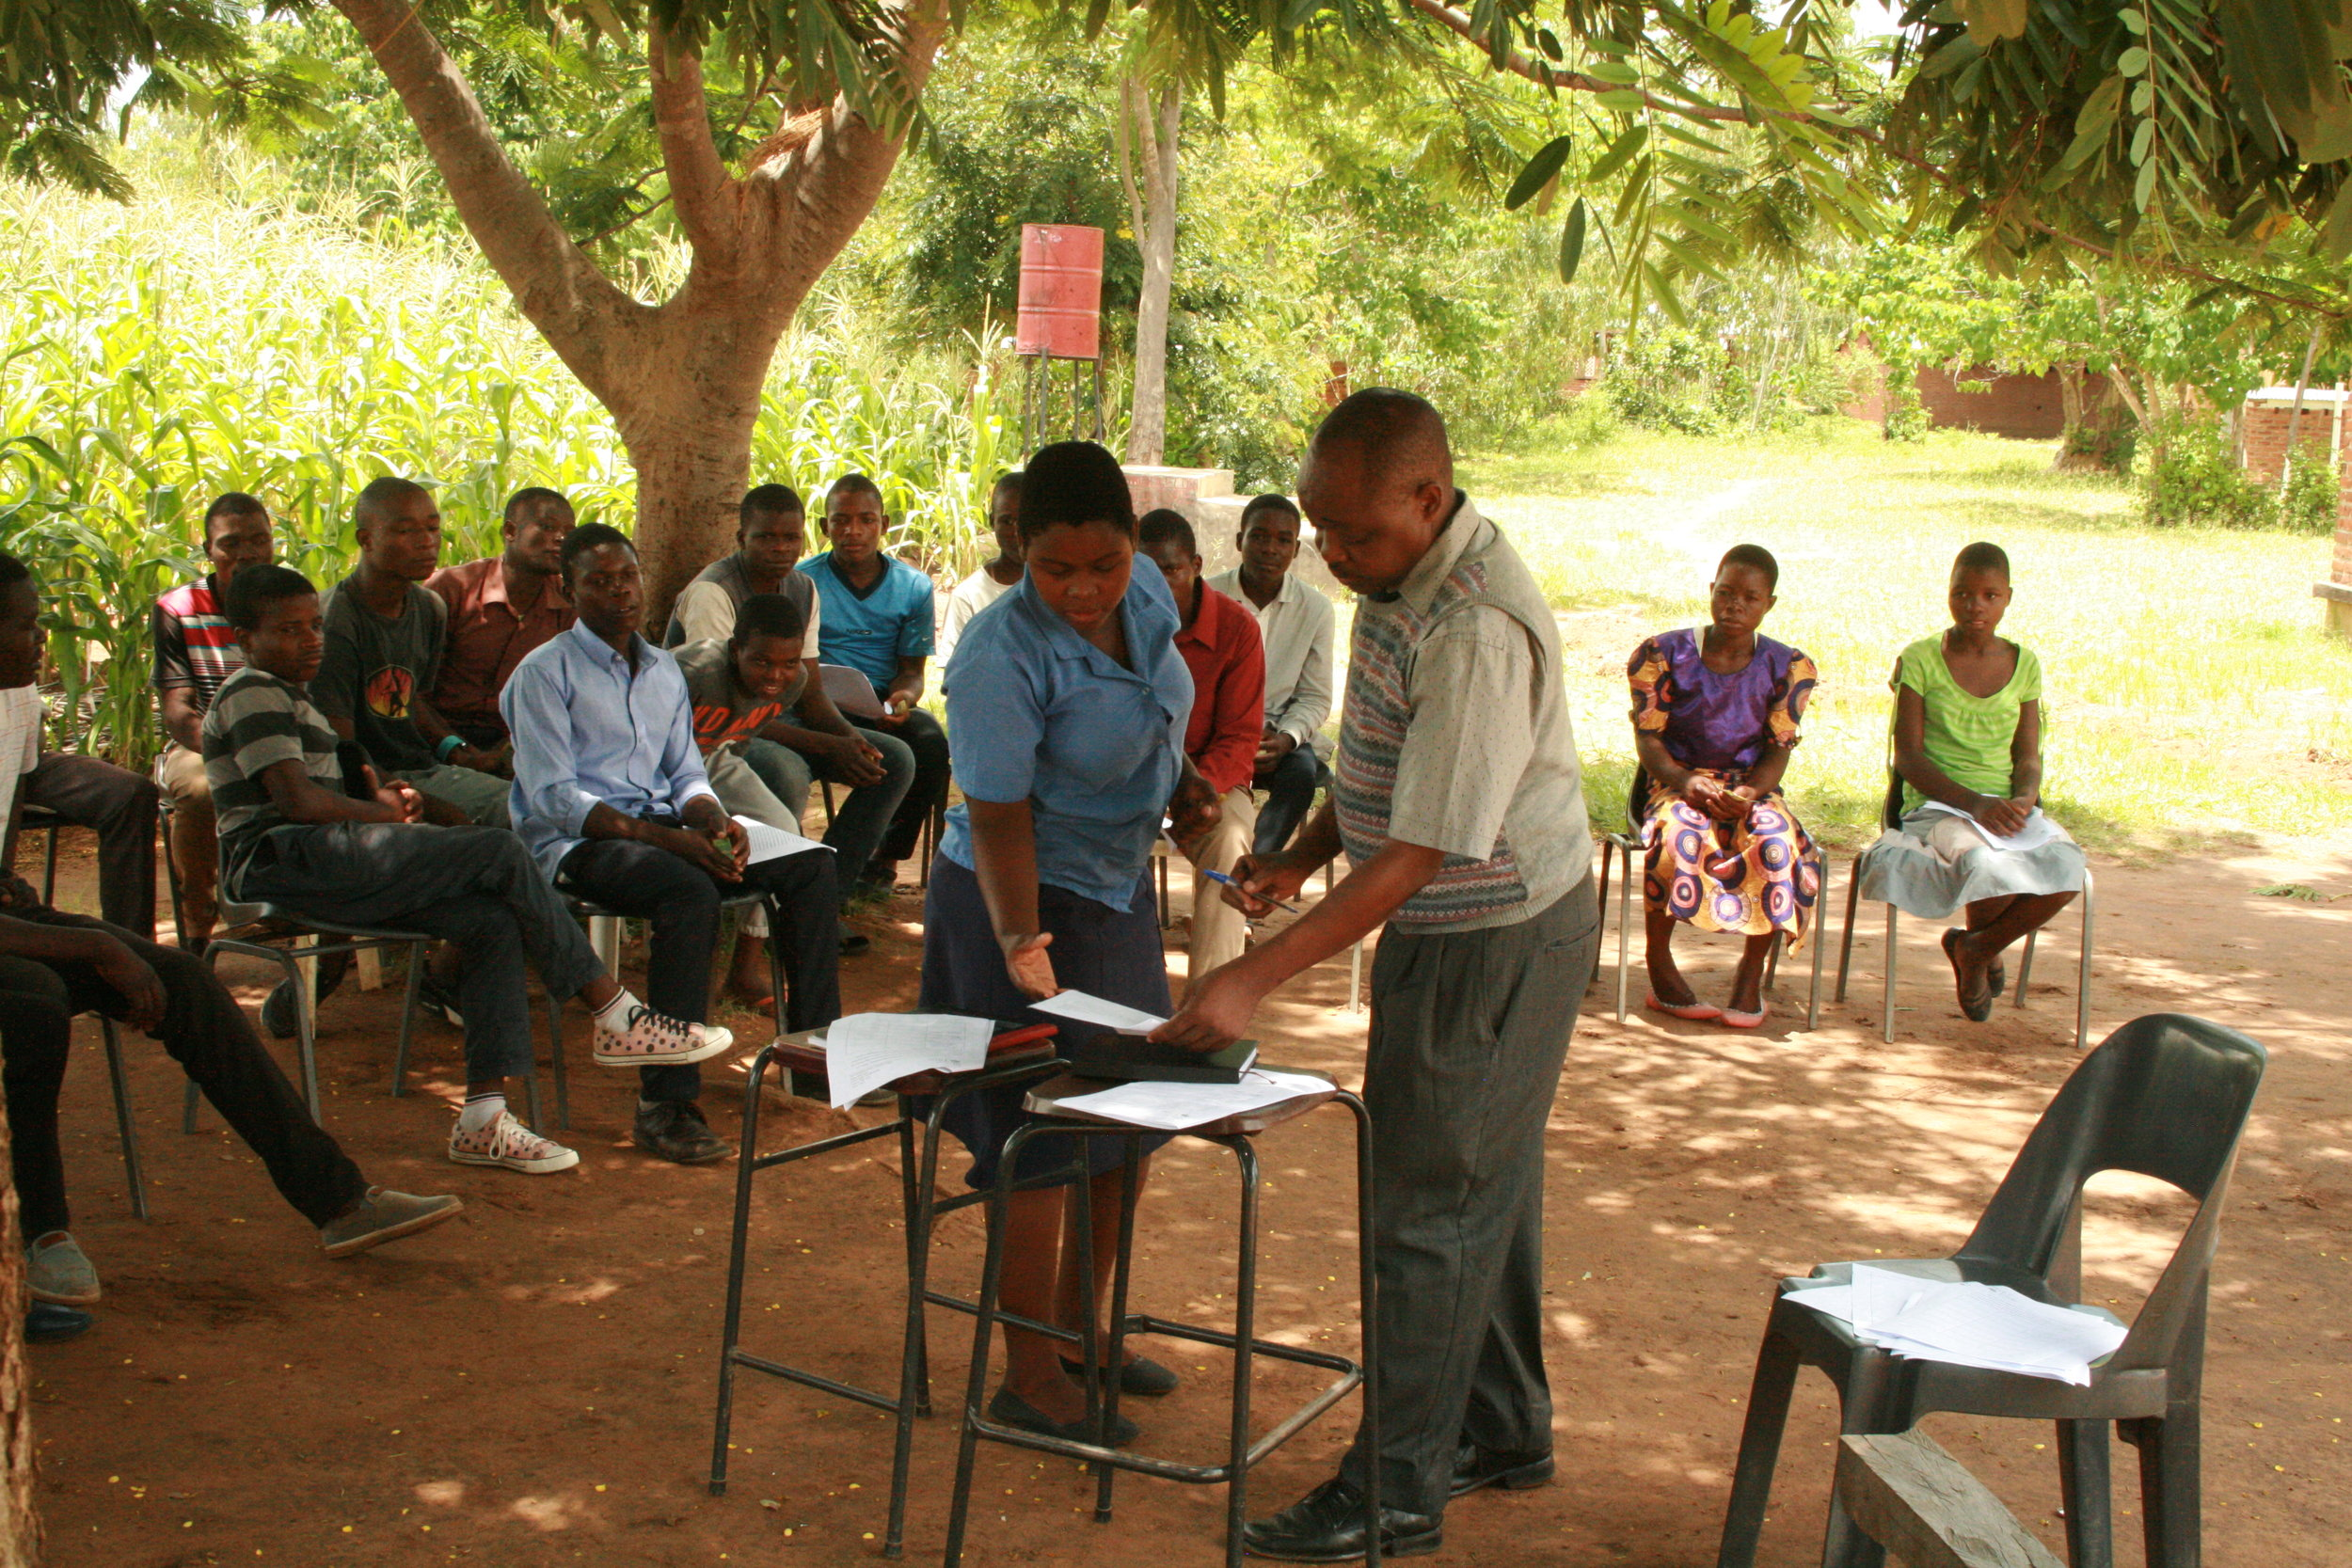 Above: SSP students sign Student Agreements with Headteacher Chapata.